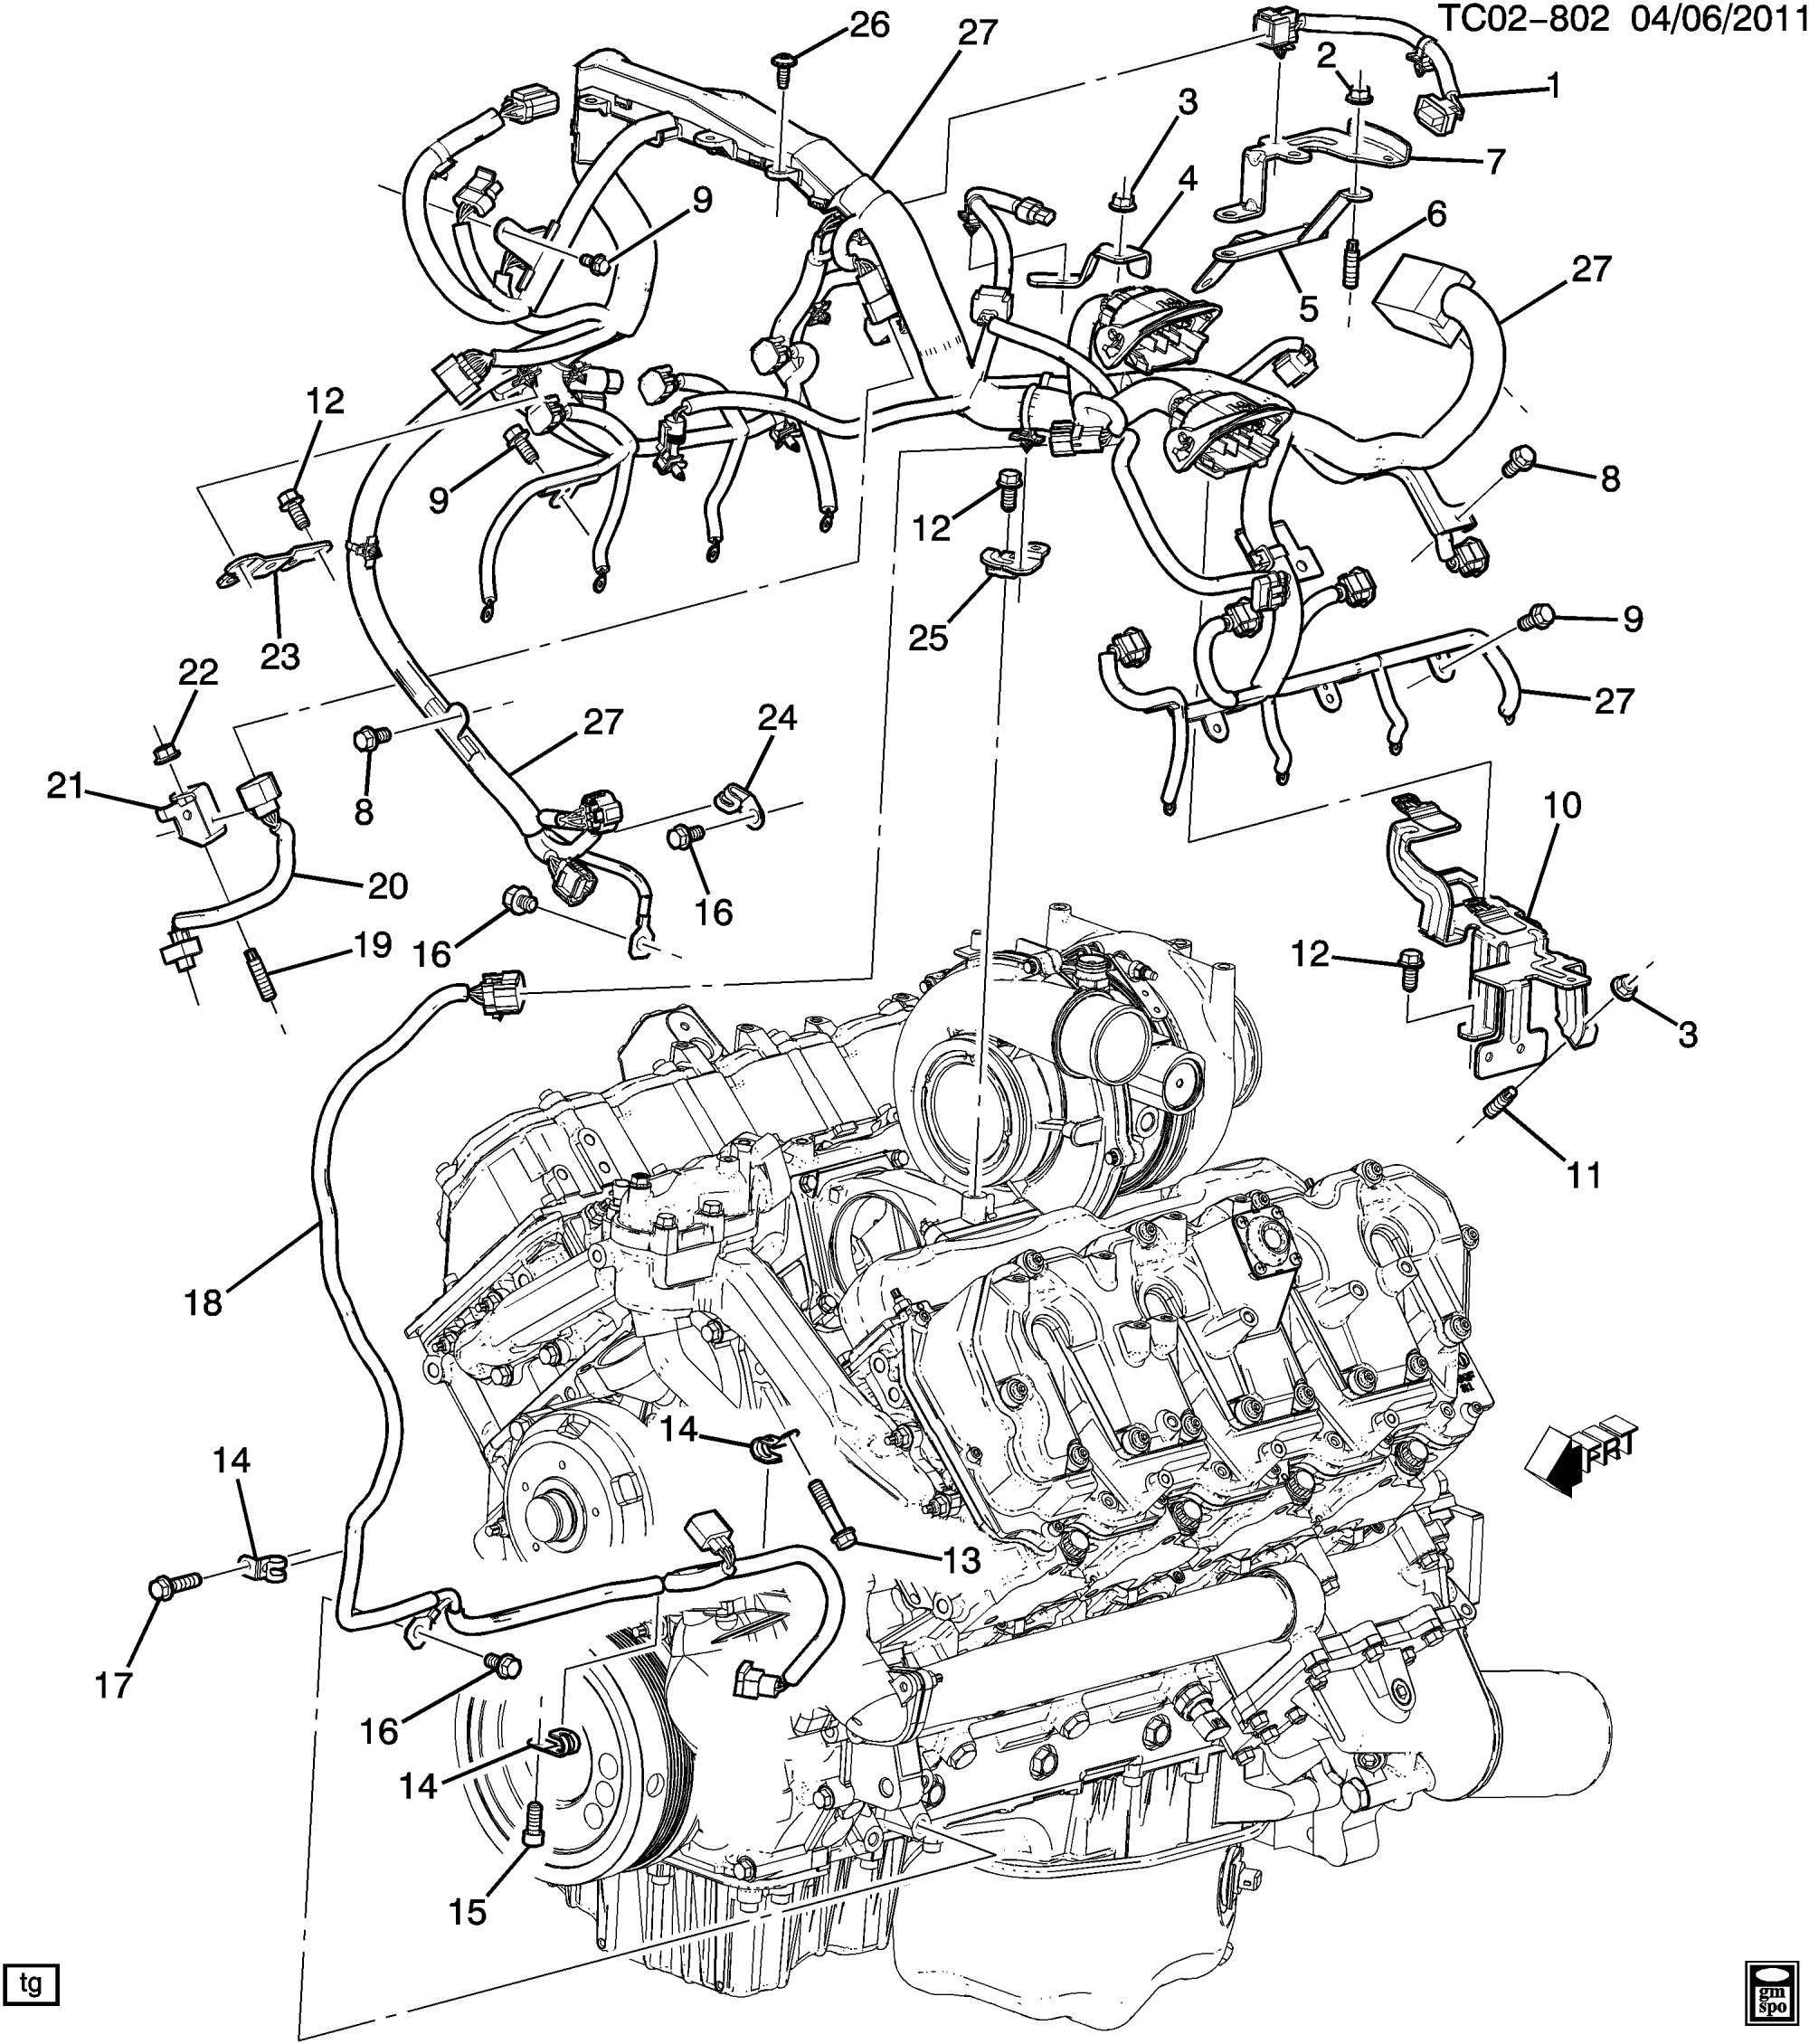 hight resolution of lly engine diagram wiring diagram detailed 2004 gmc sierra fuel system diagram lb7 fuel system diagram